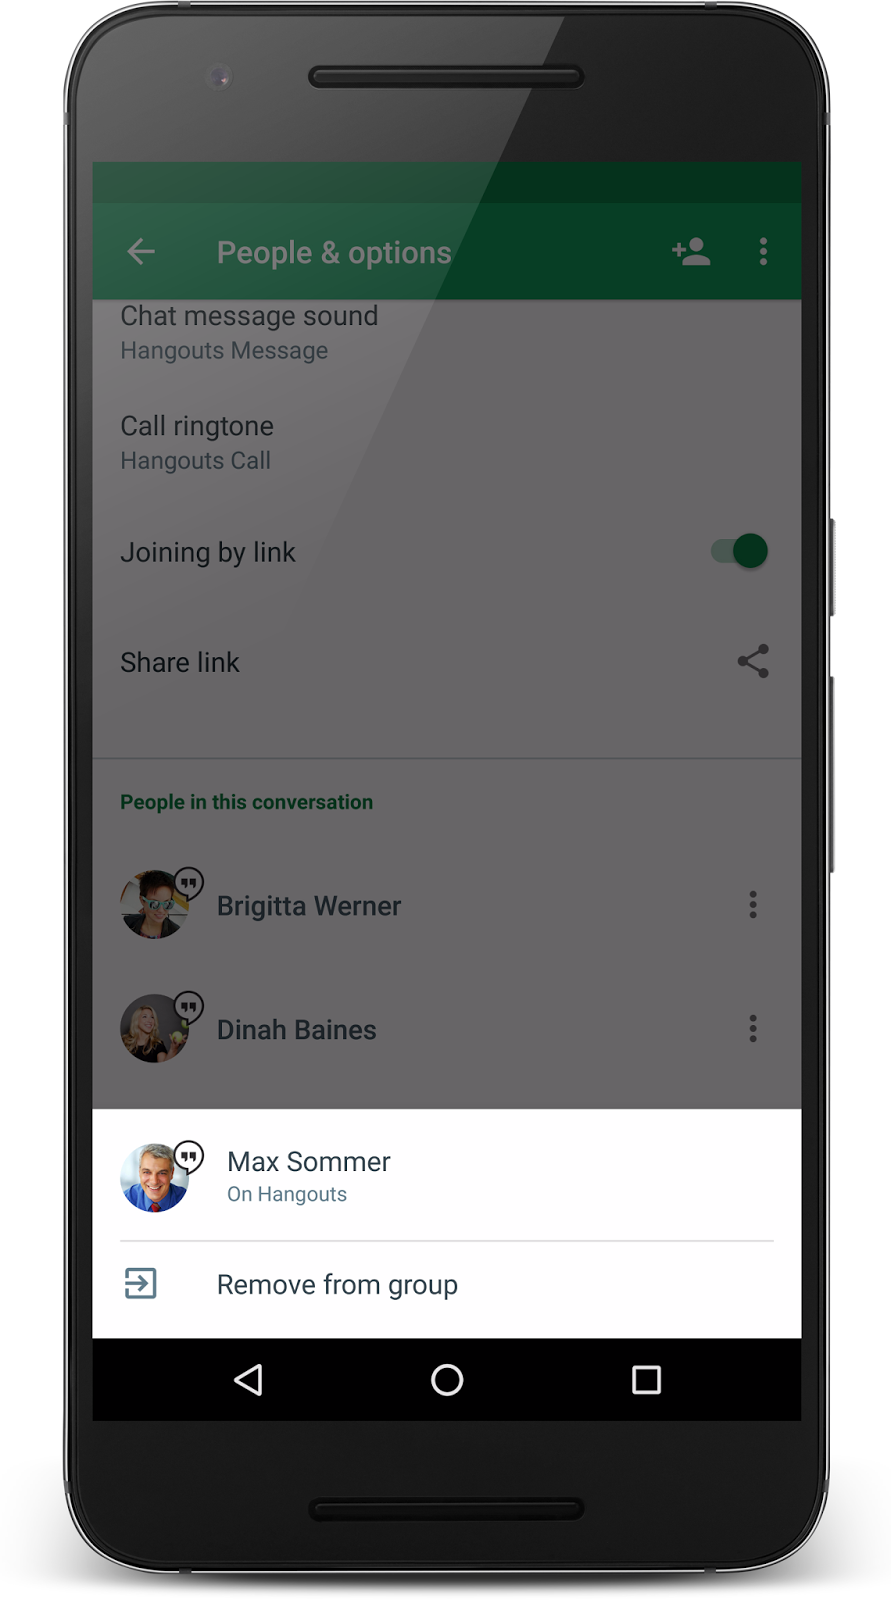 G Suite Updates Blog: Better group chat controls are coming